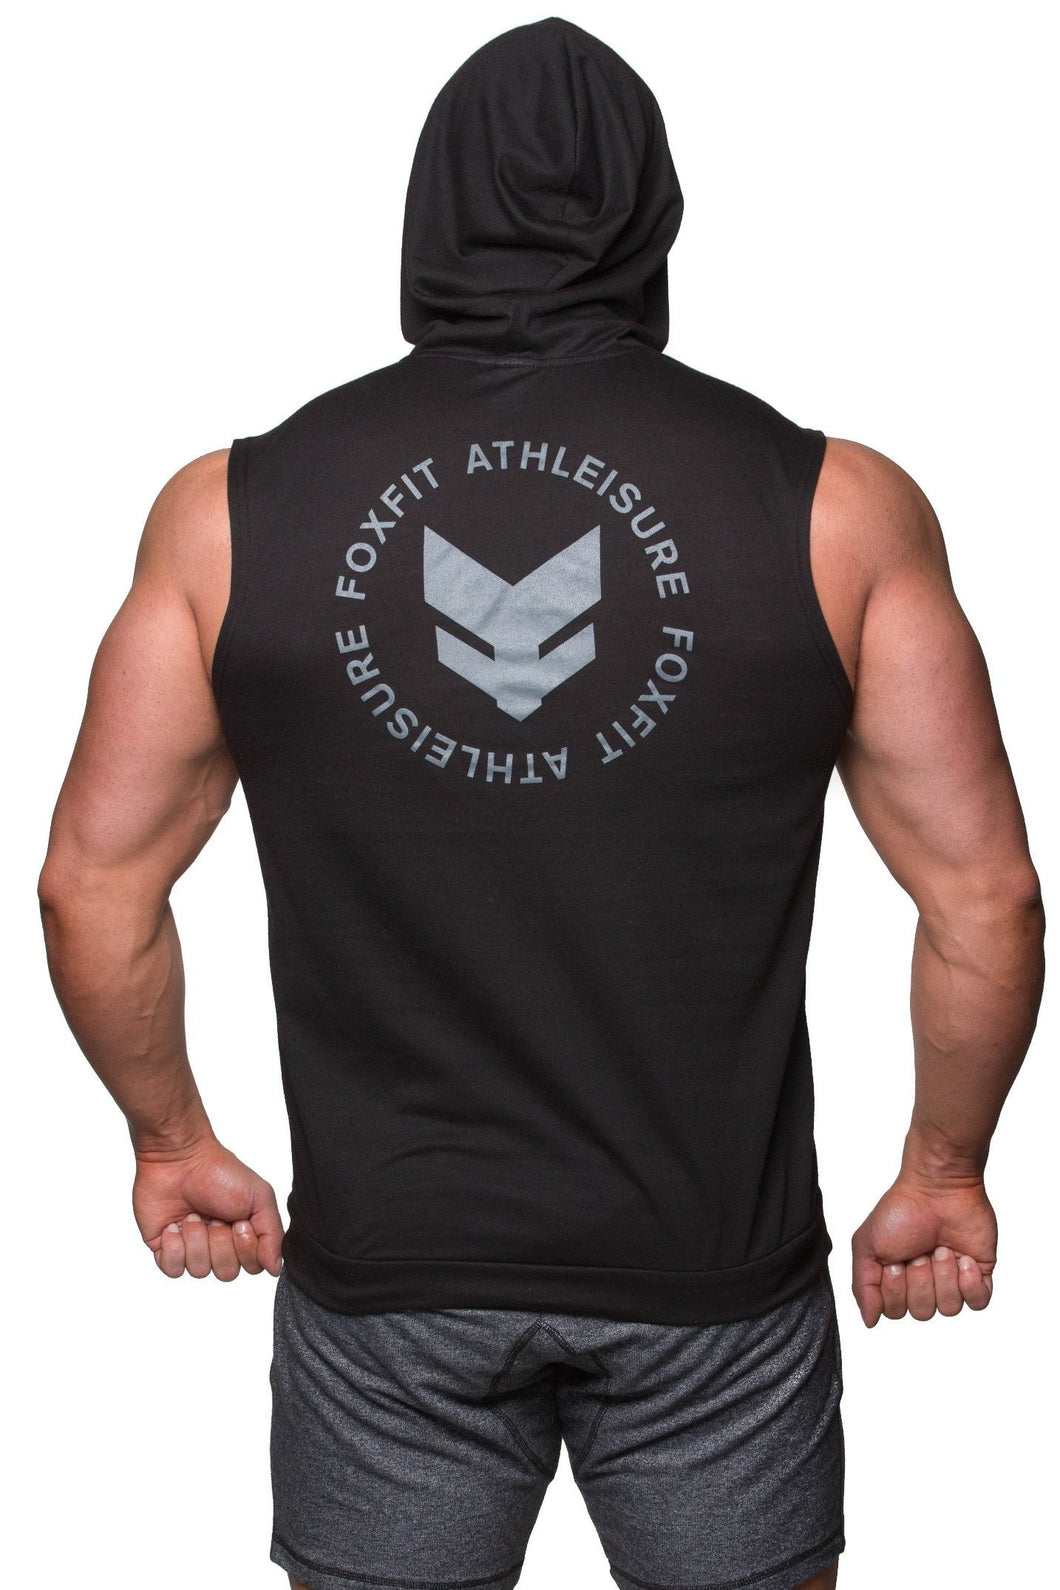 Ultra Light Weight Summer Sleeveless Hoodie - Black